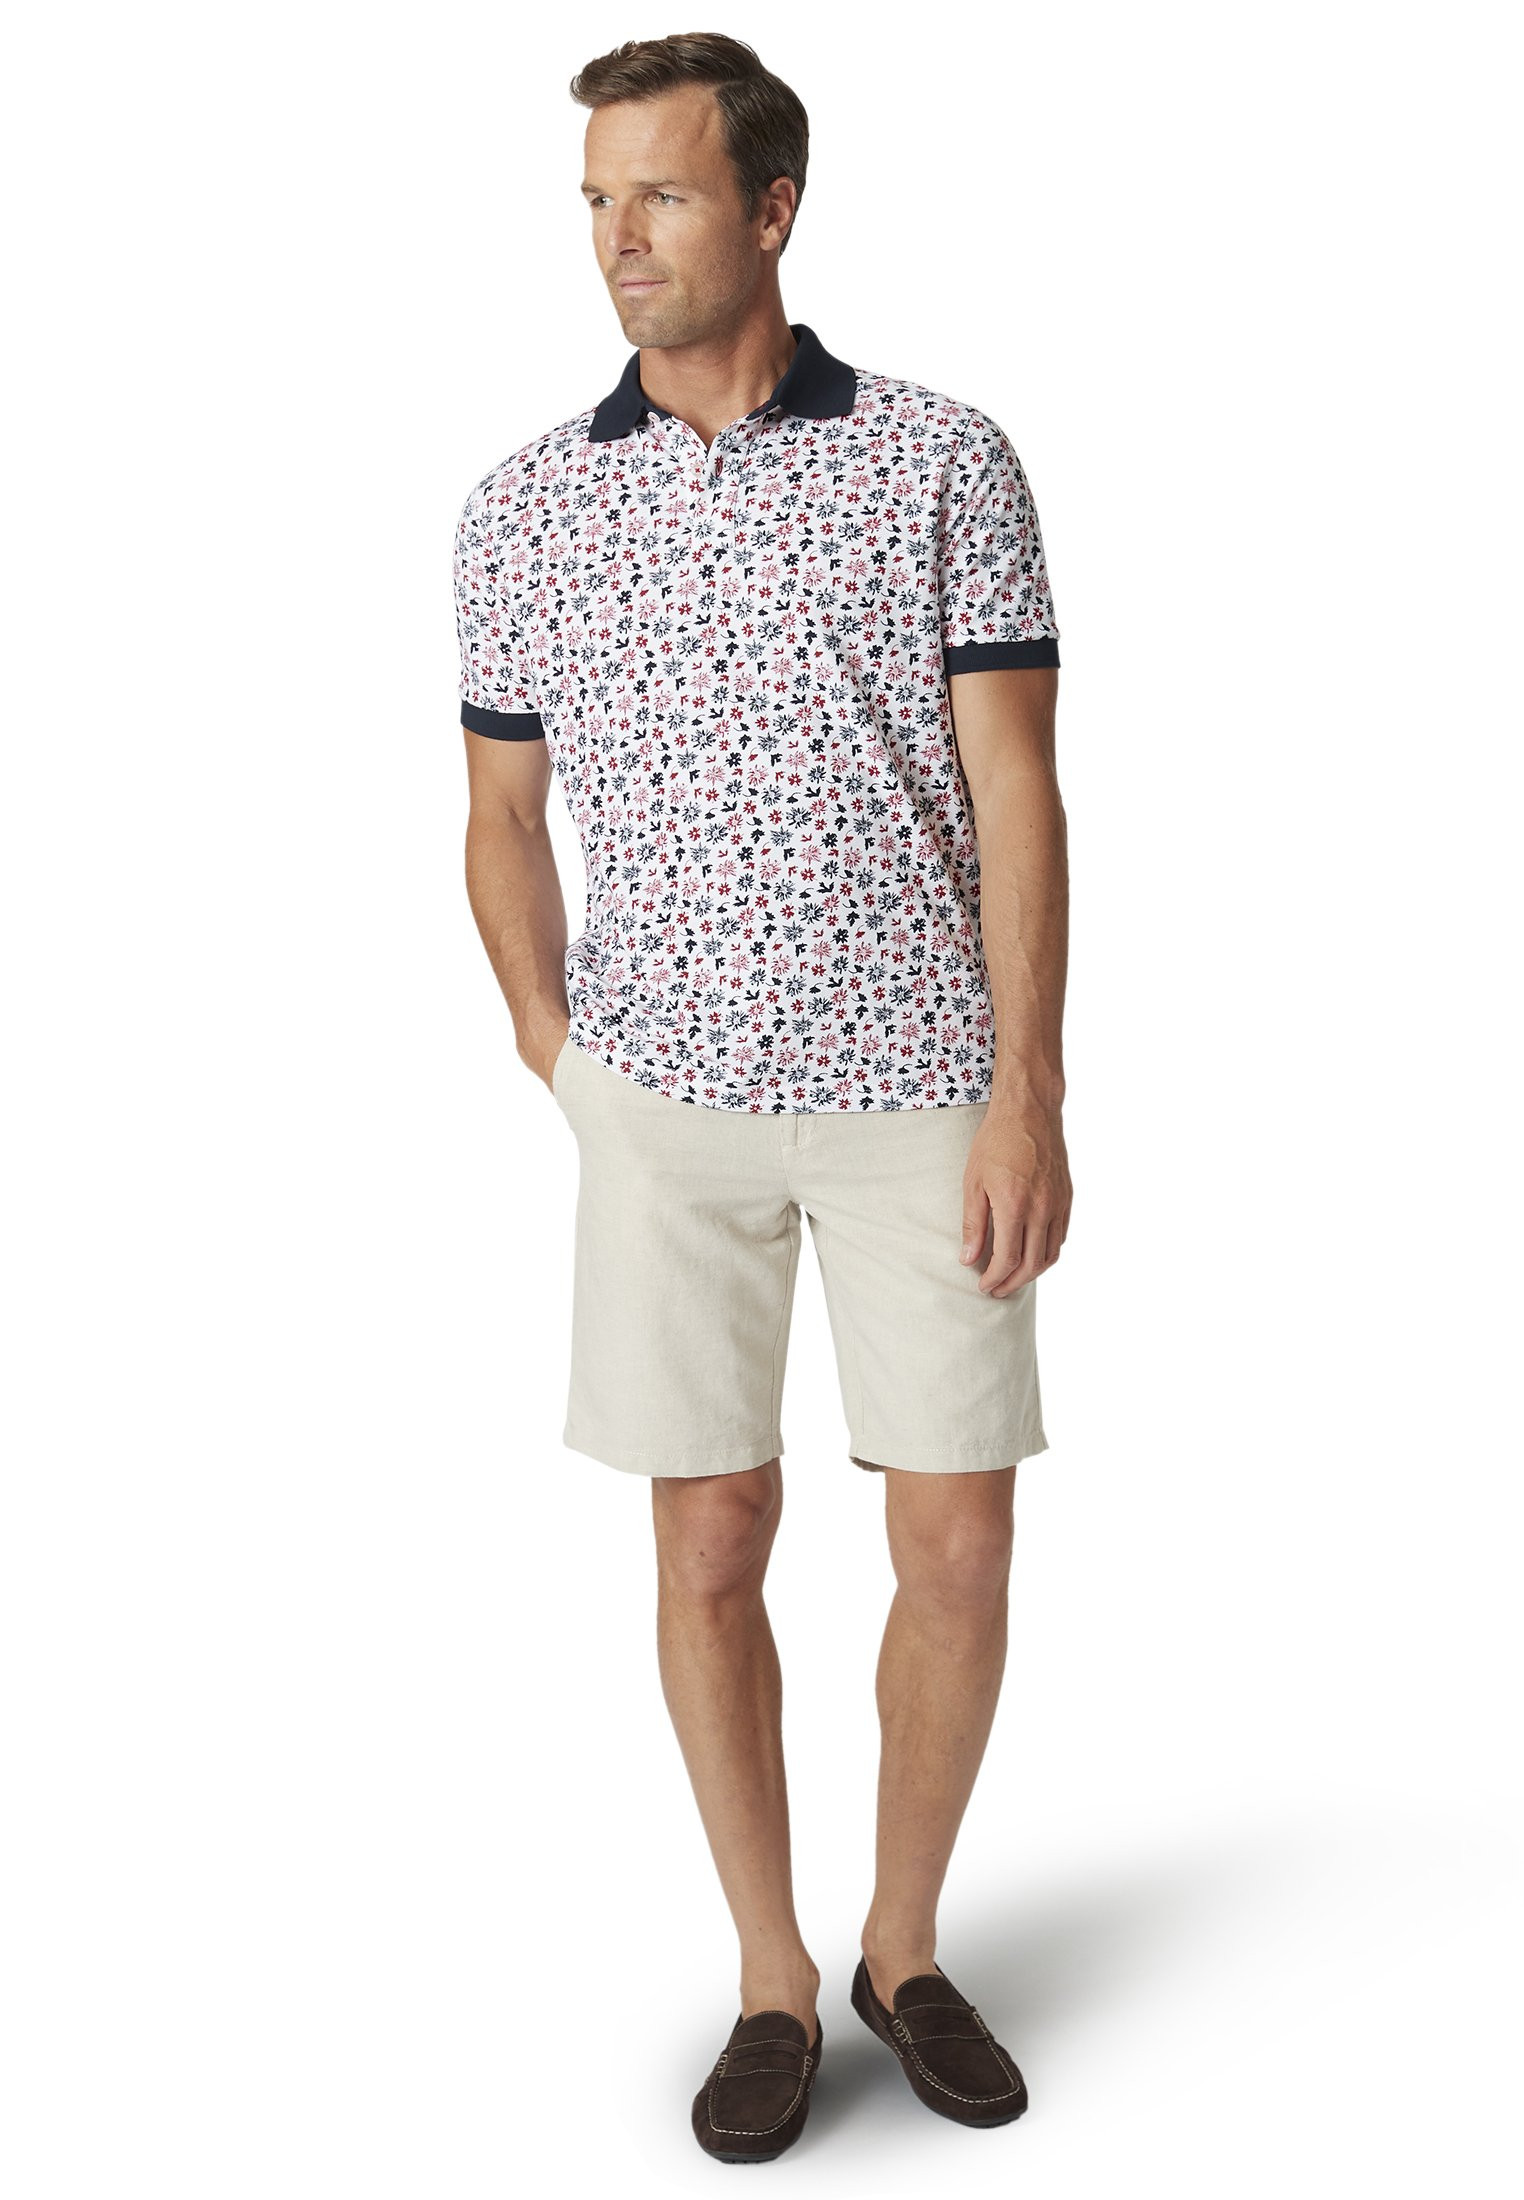 Bruton Red and Navy Flower Print Garment Washed Piqué Polo Shirt